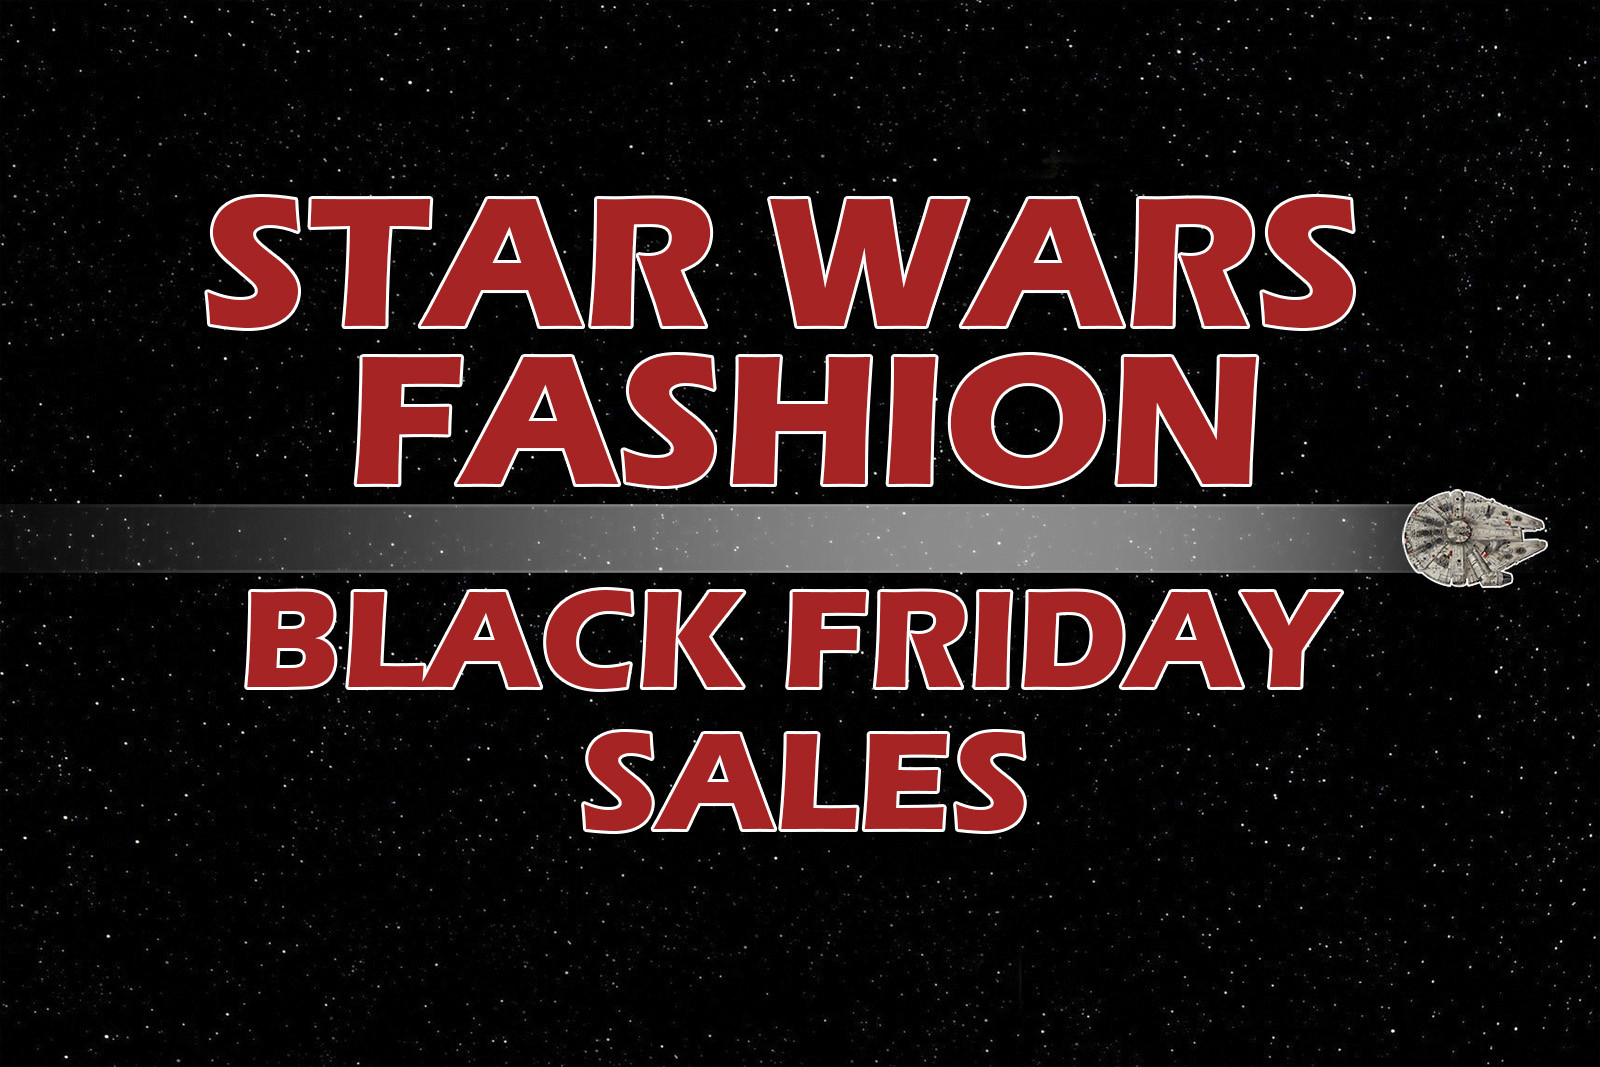 Star Wars Fashion on sale - Black Friday 2016